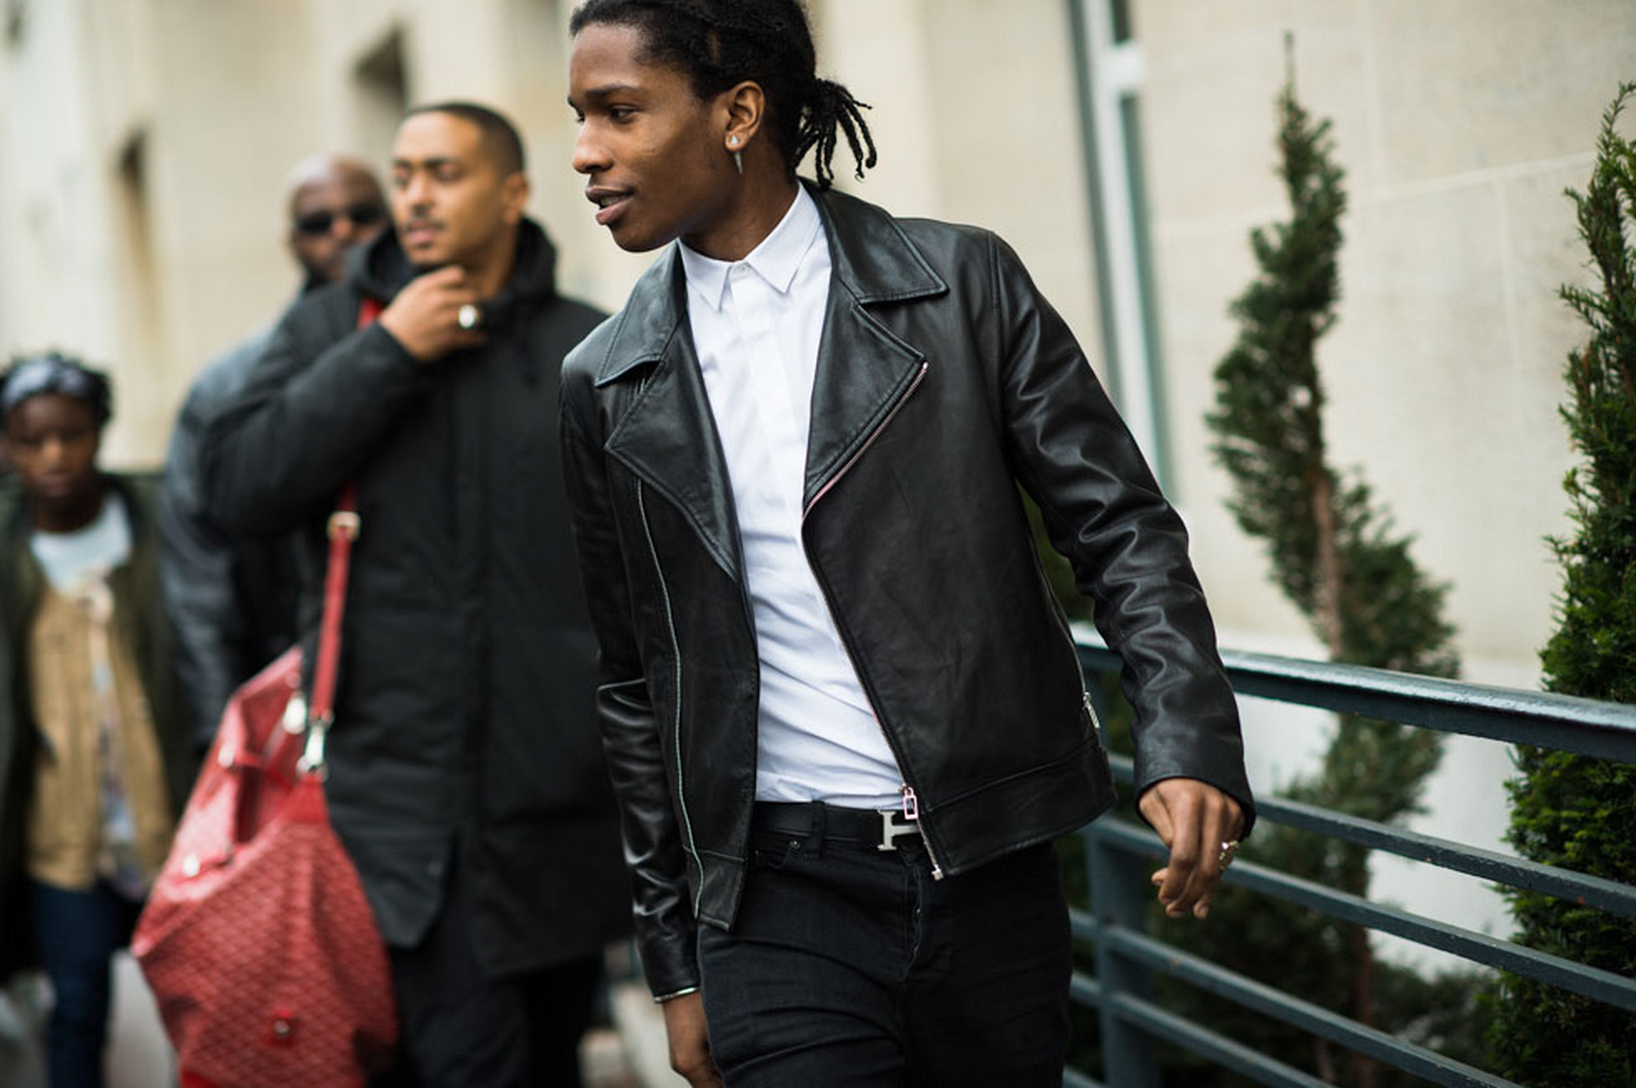 Man Bun Appreciation 6 Black Men That Rock The Trendy